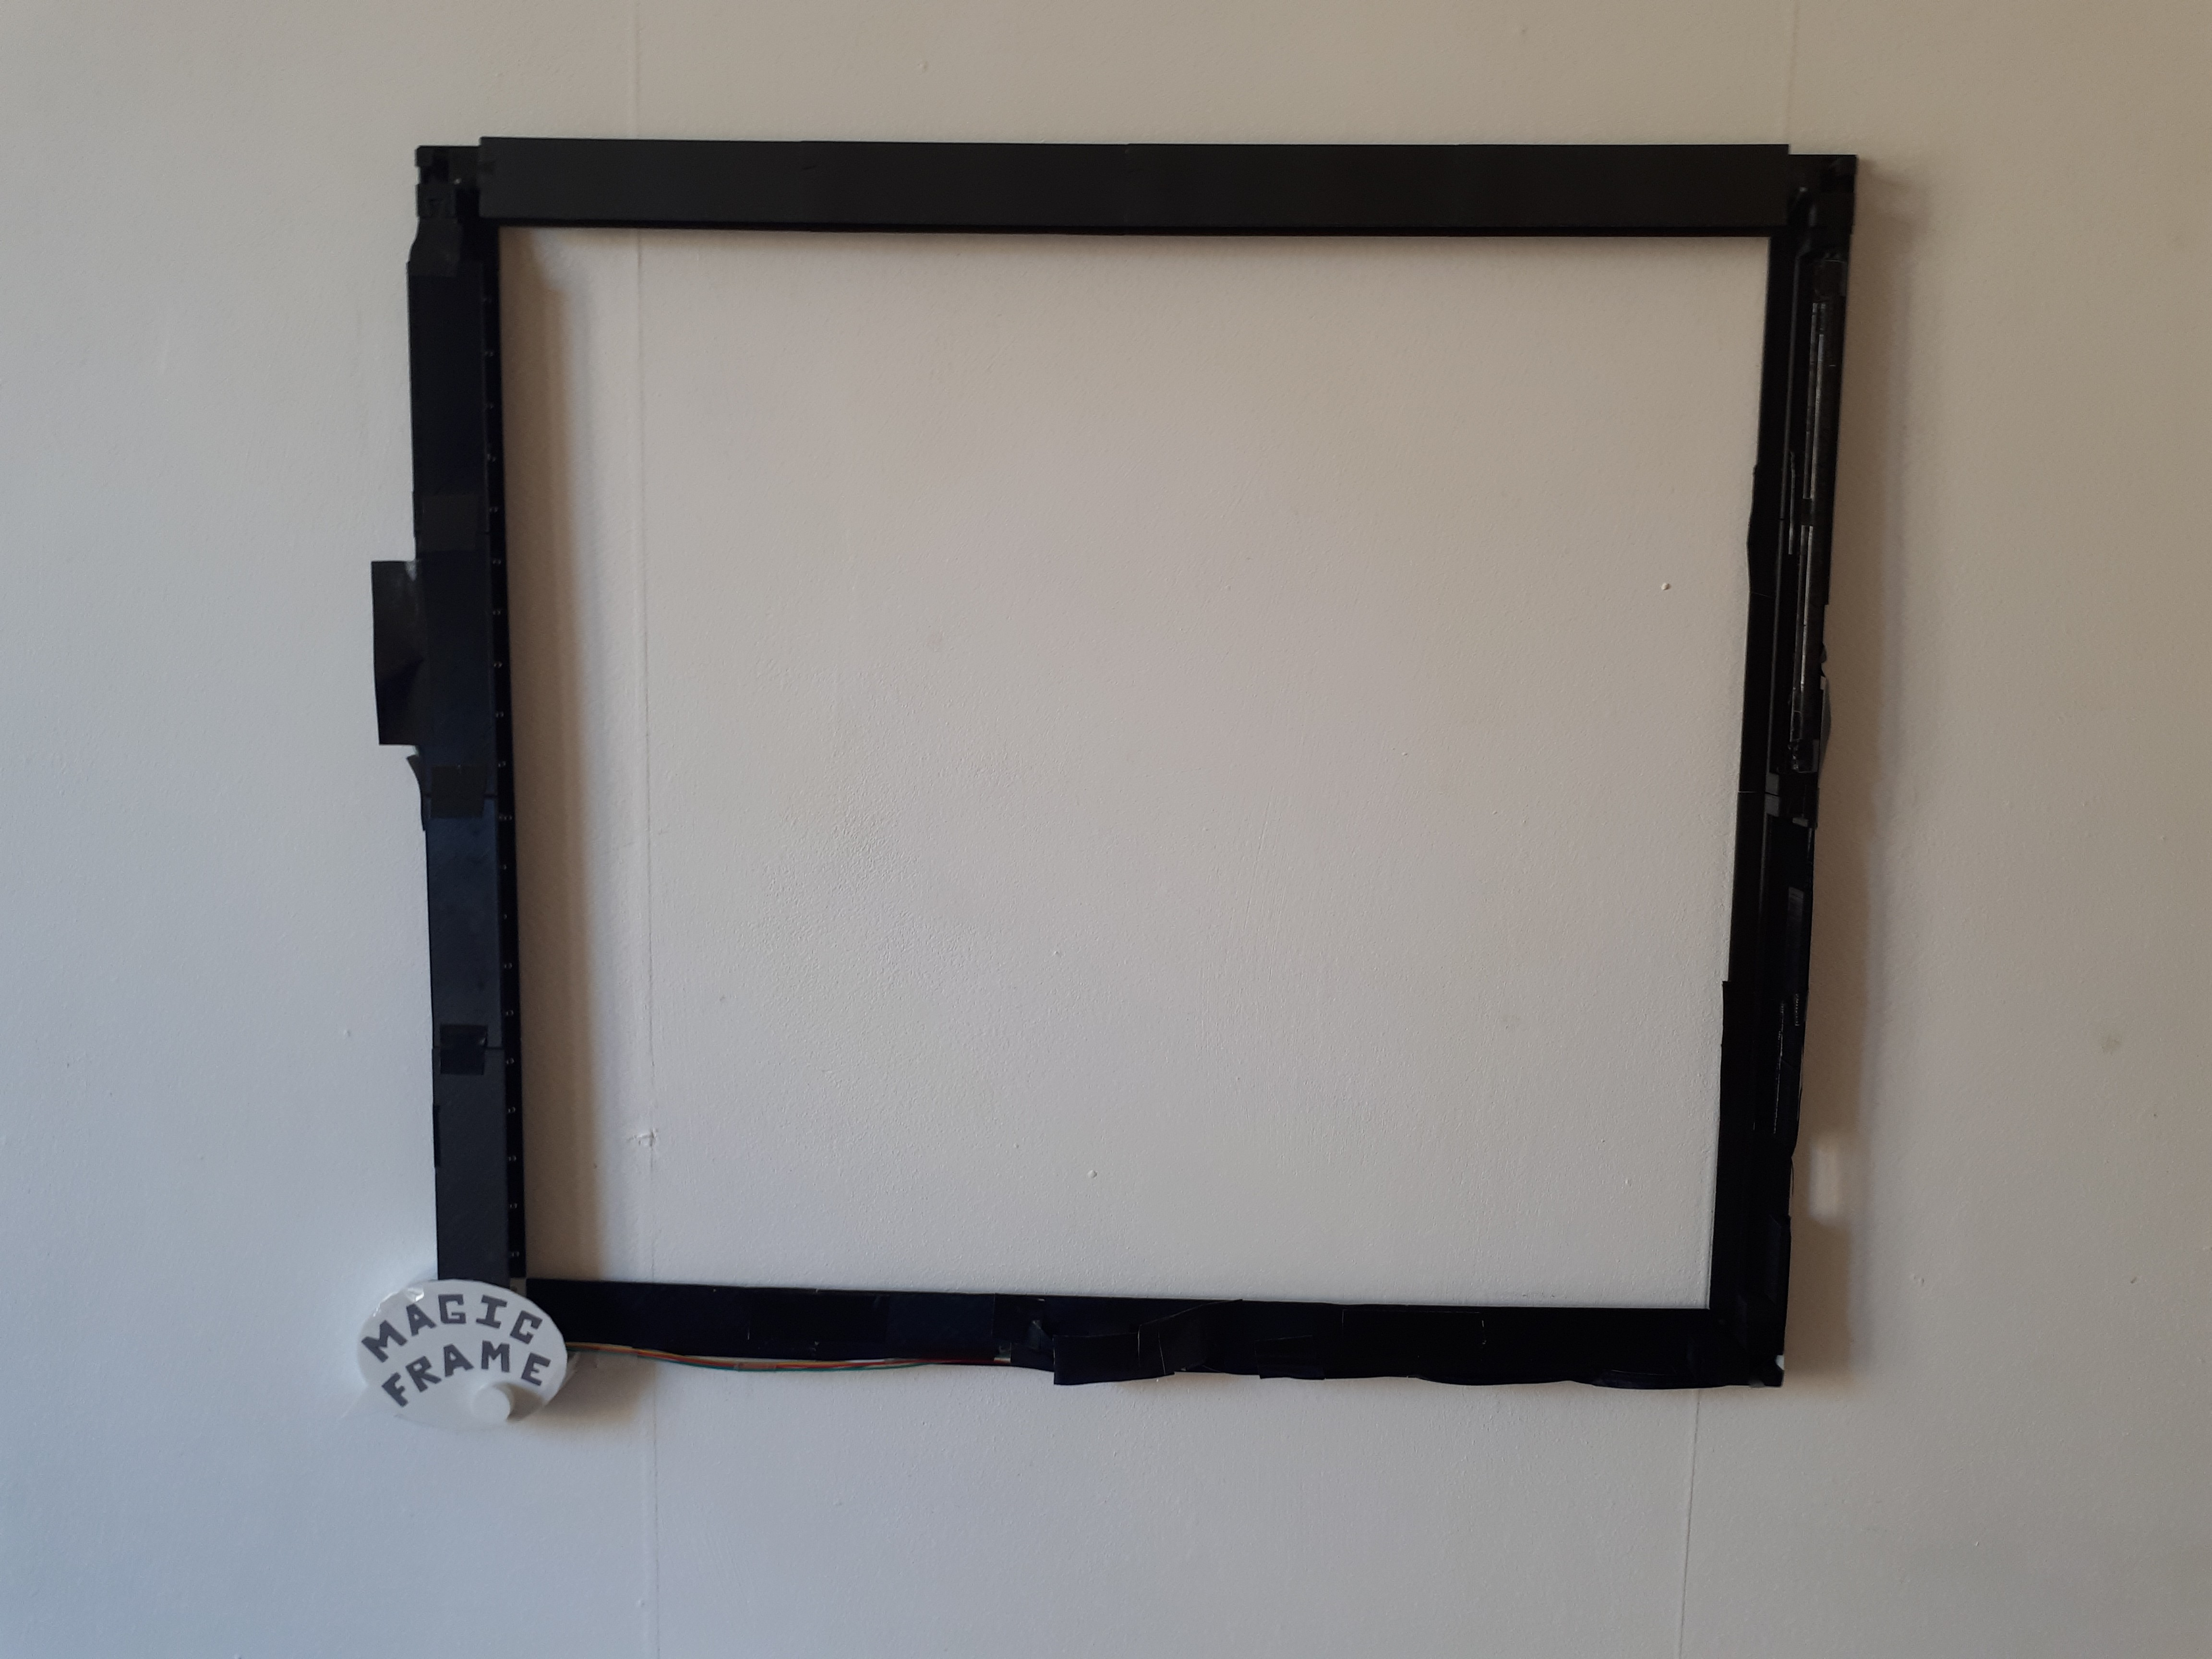 Magic Frame Turn Everything into a Touch Area